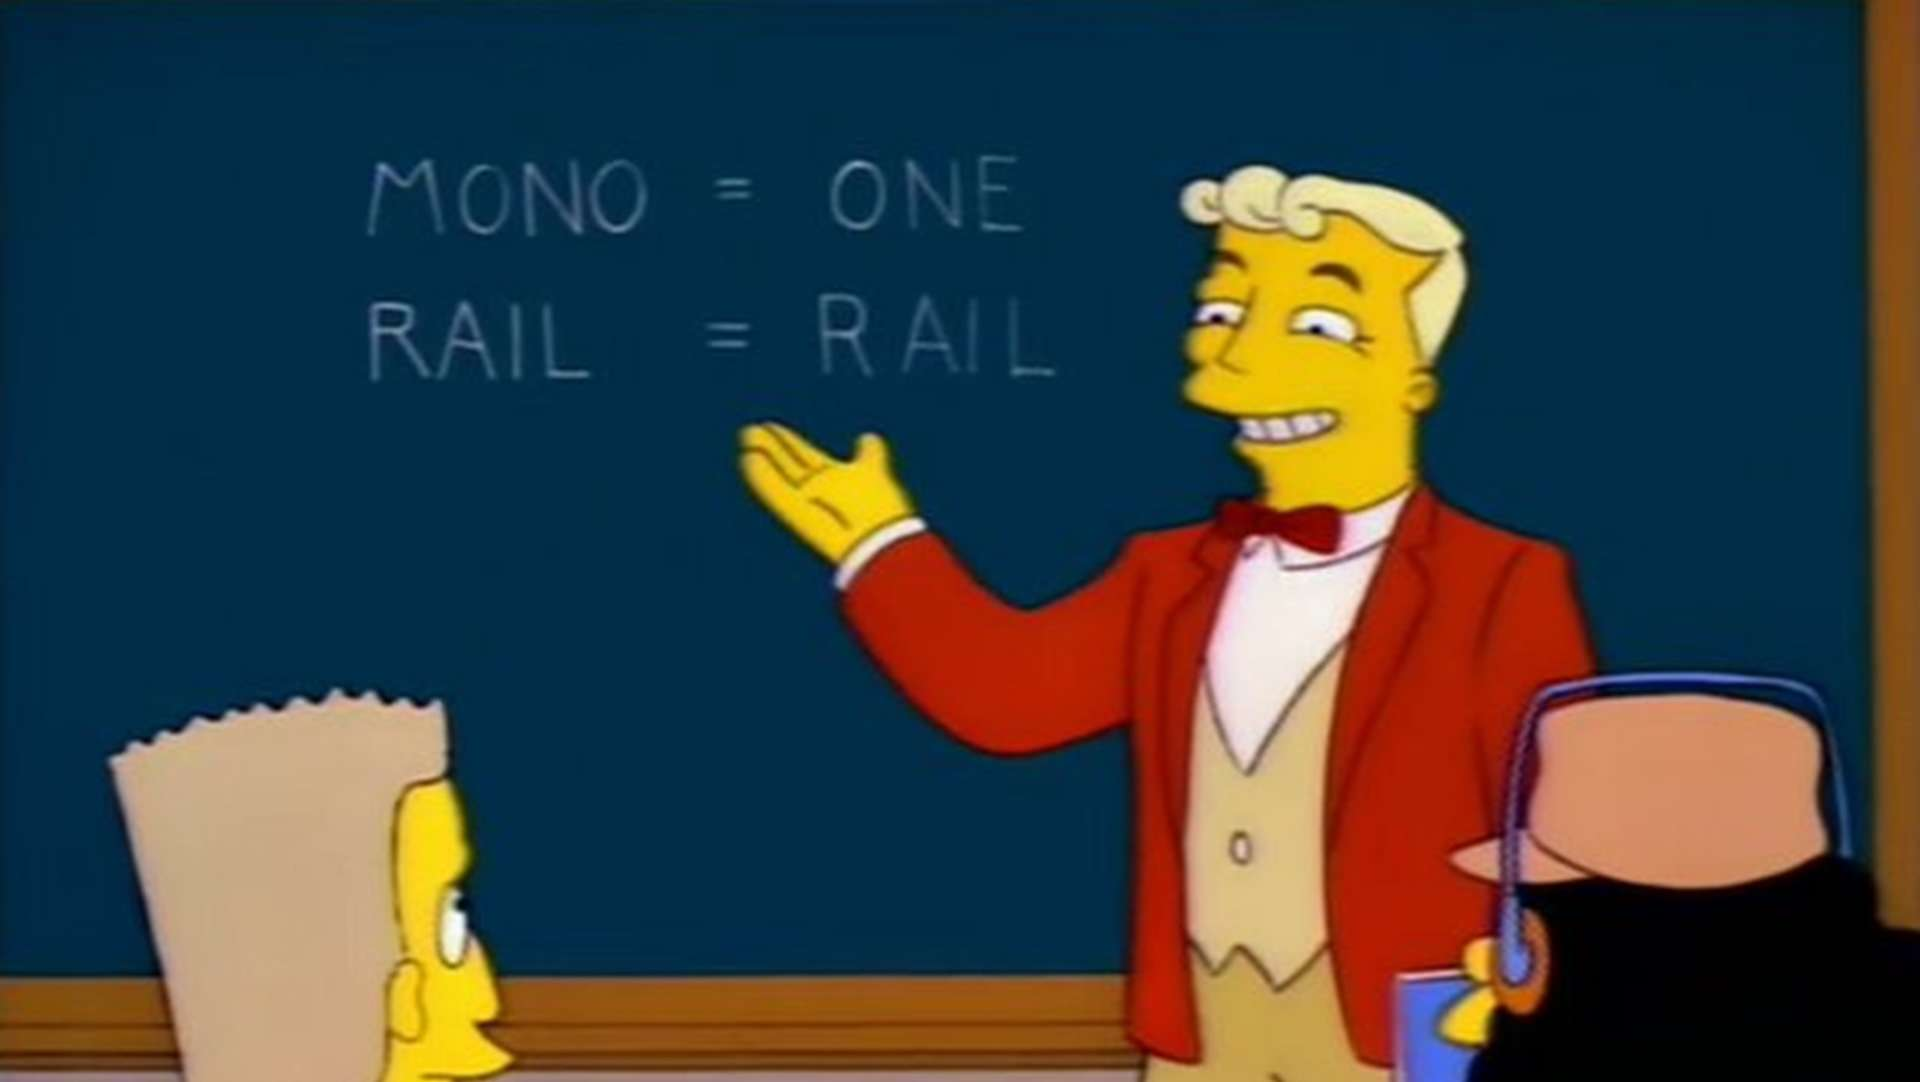 simpsons-marge-vs-the-monorail.jpg